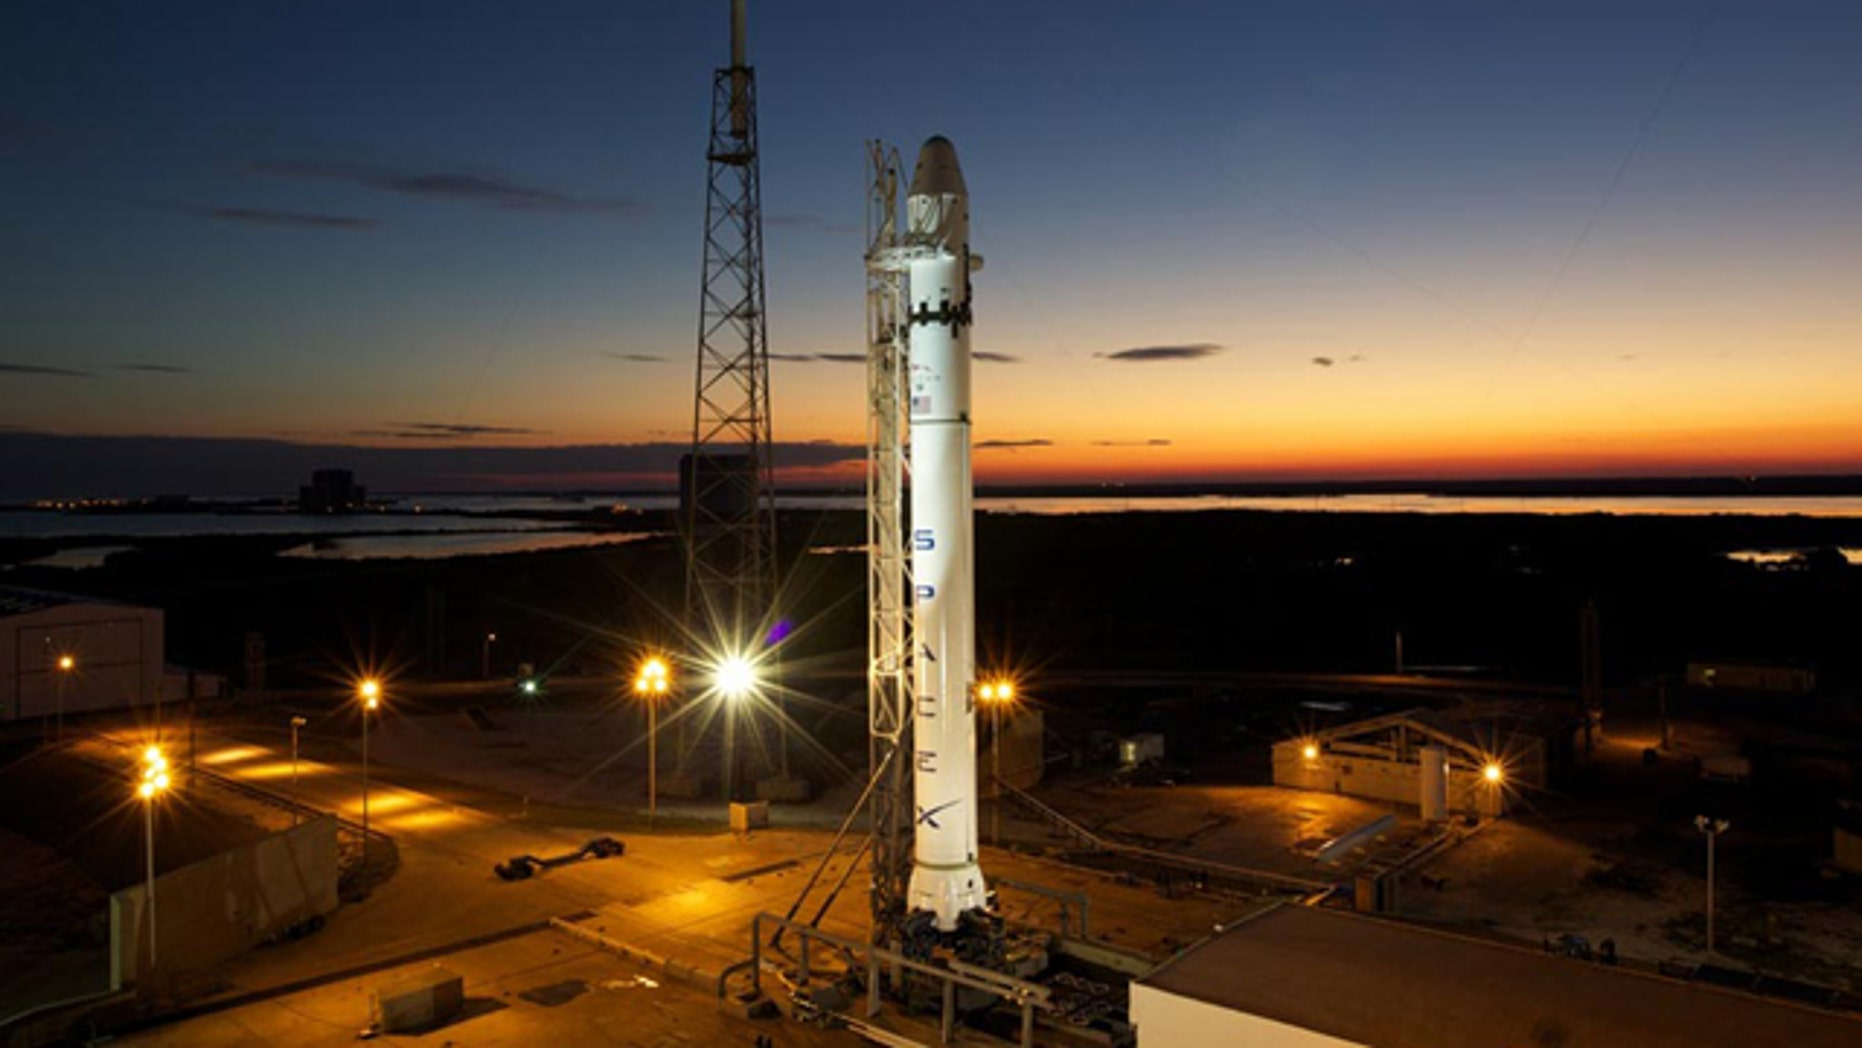 spacex may launch - HD1862×1048